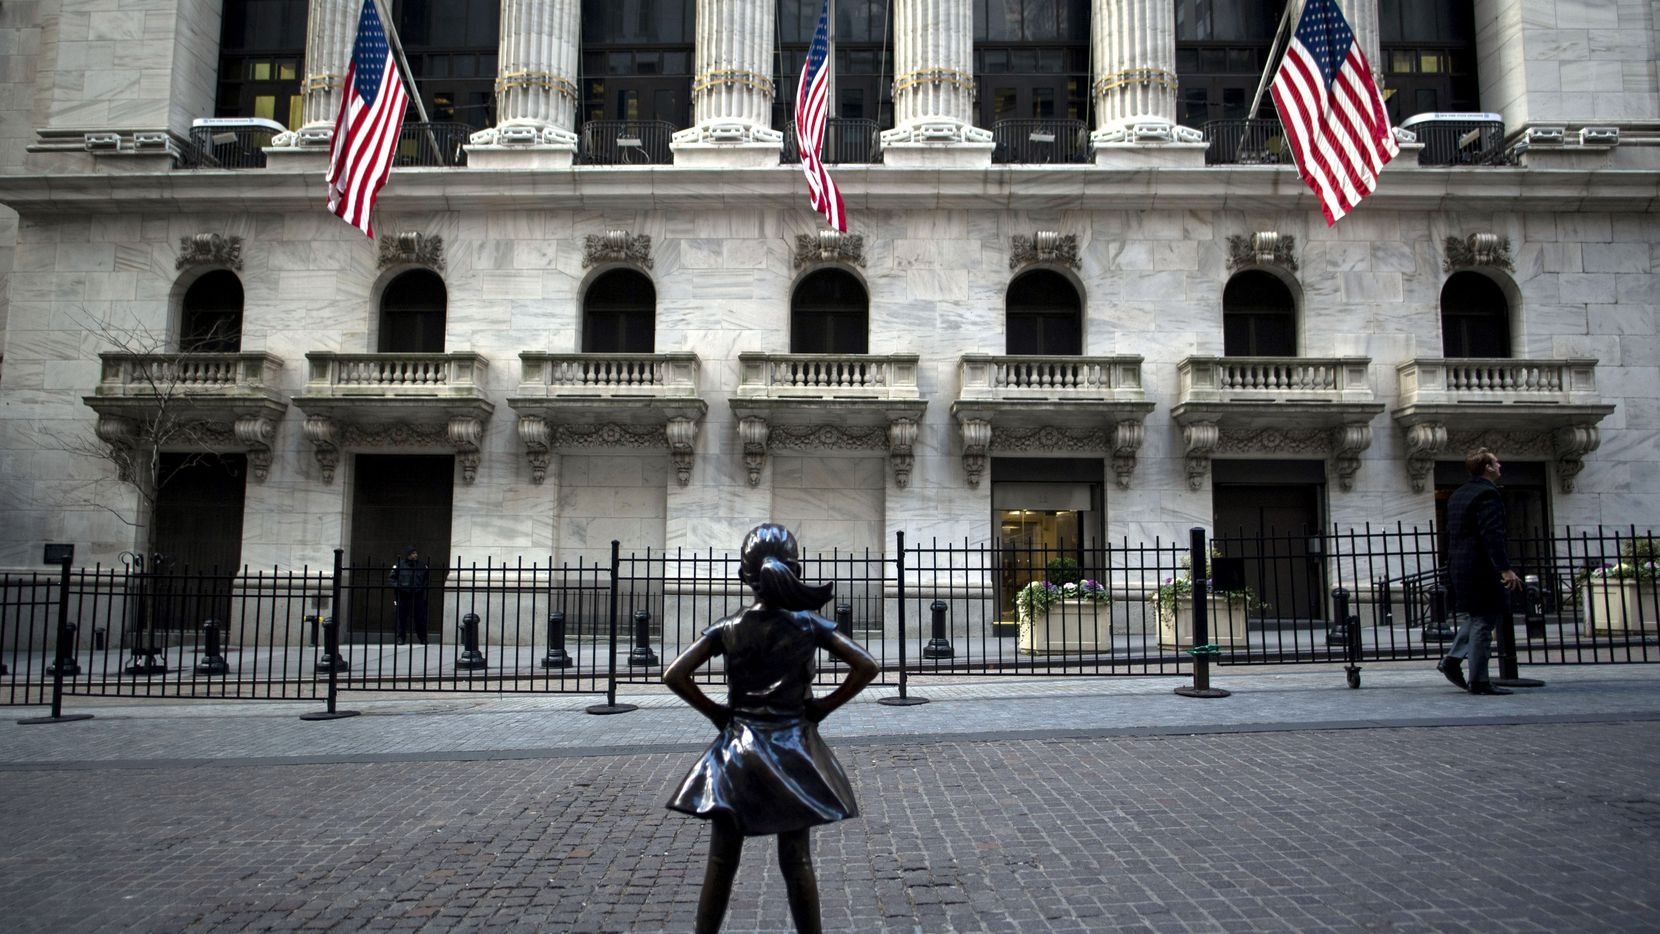 """The """"Fearless Girl"""" statue stands facing the New York Stock Exchange (NYSE) on Jan. 9, 2019 in New York. (Photo by Johannes Eisele/AFP)"""